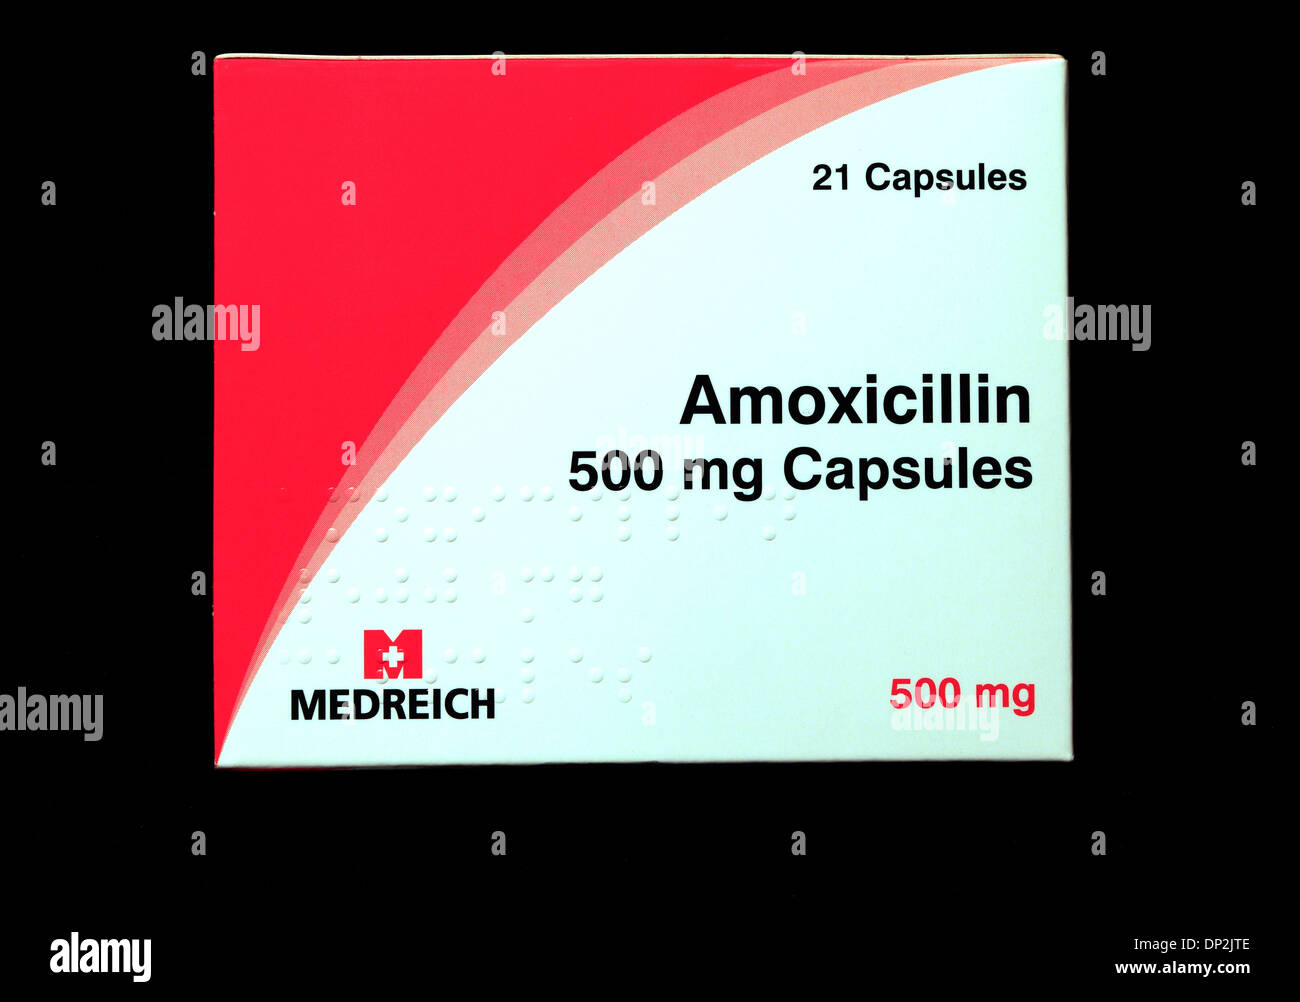 Amoxicillin Treatment Drug Uses, Medication Forms